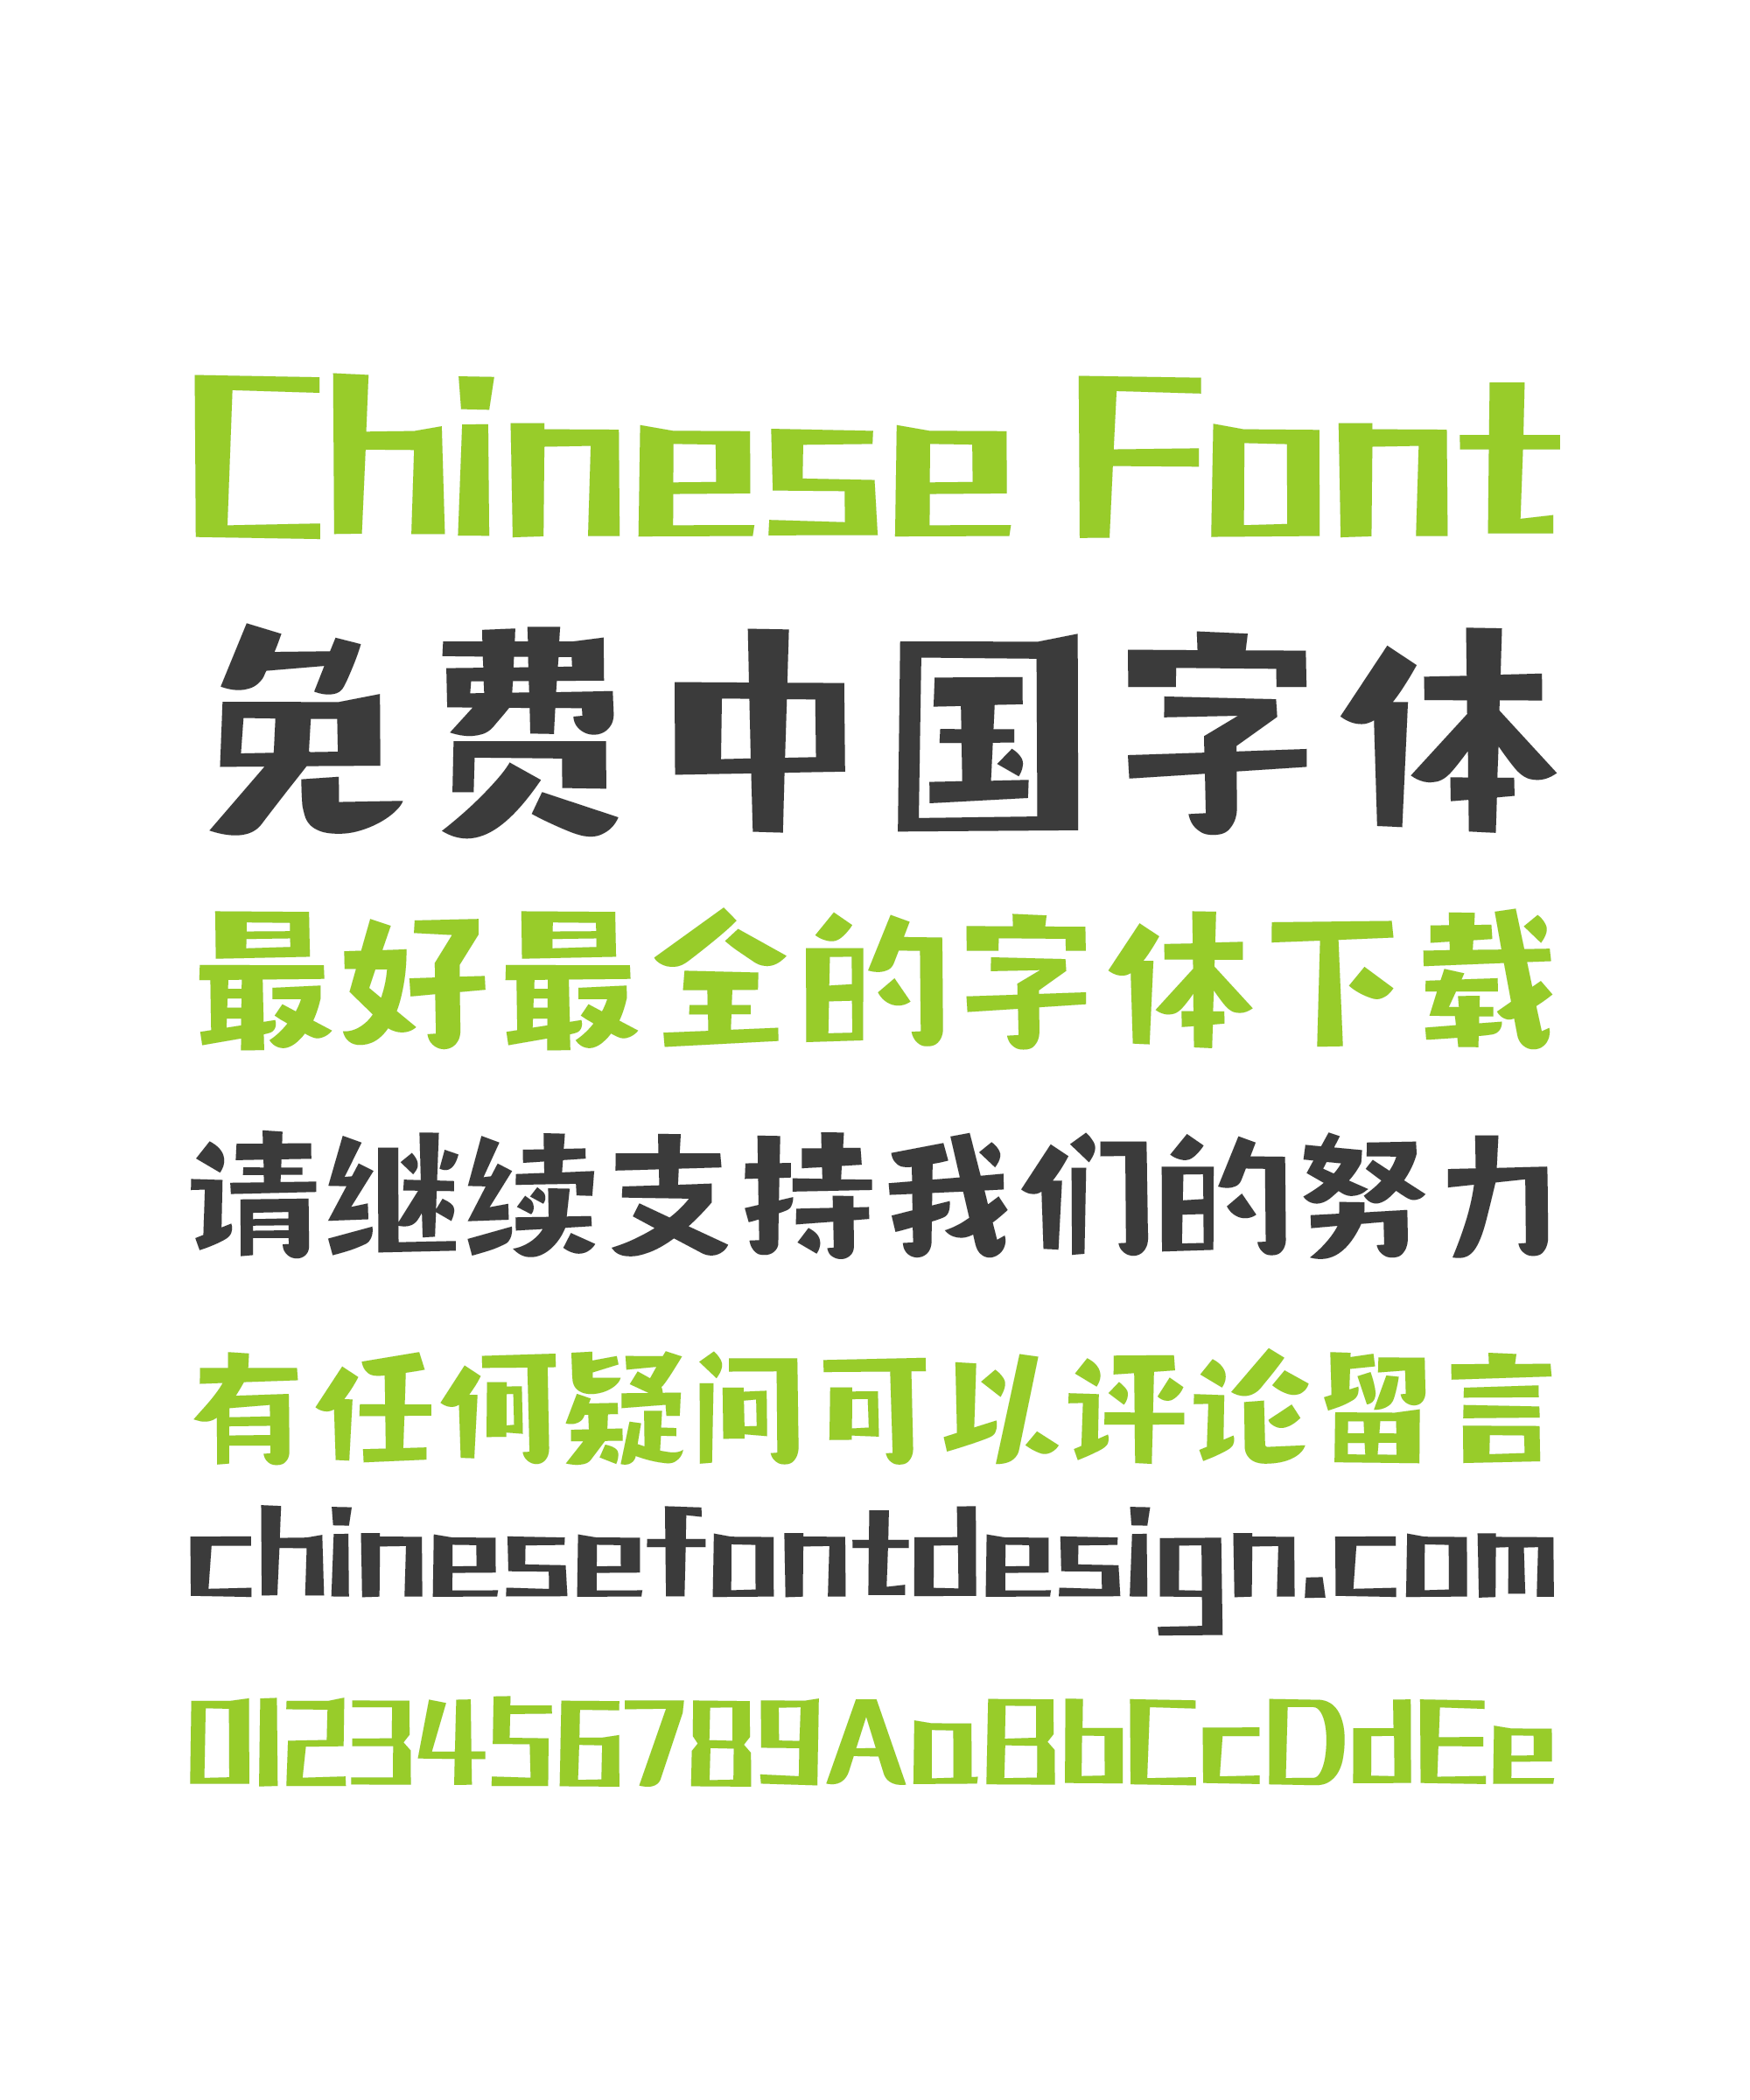 Zao Zi Gong Fang (Make Font)Carefree Retro Chinese Font -Simplified Chinese Fonts